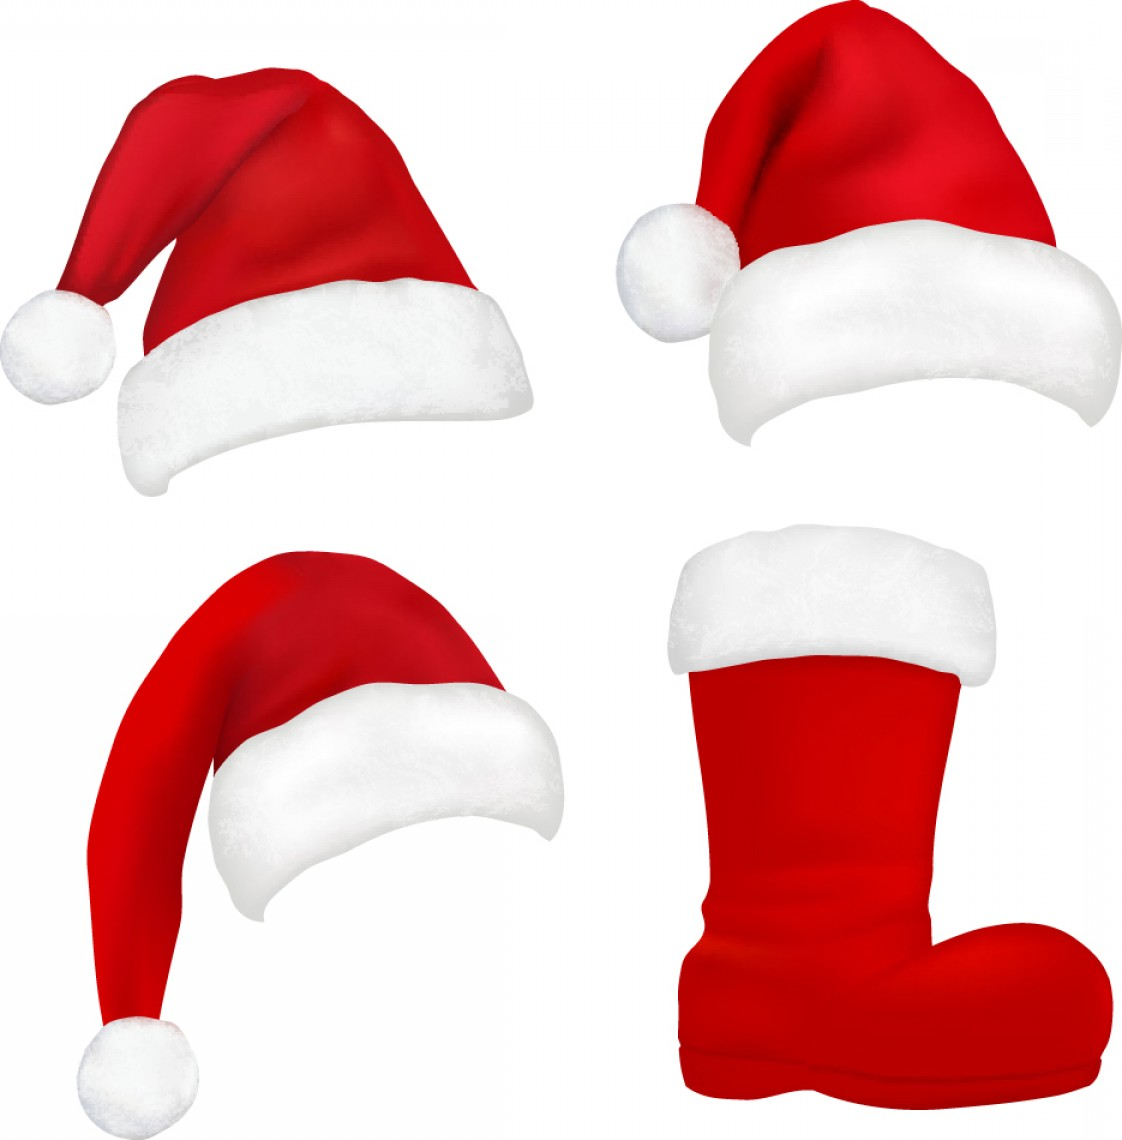 Stocking Hat Vector: Special Christmas Hats Vector